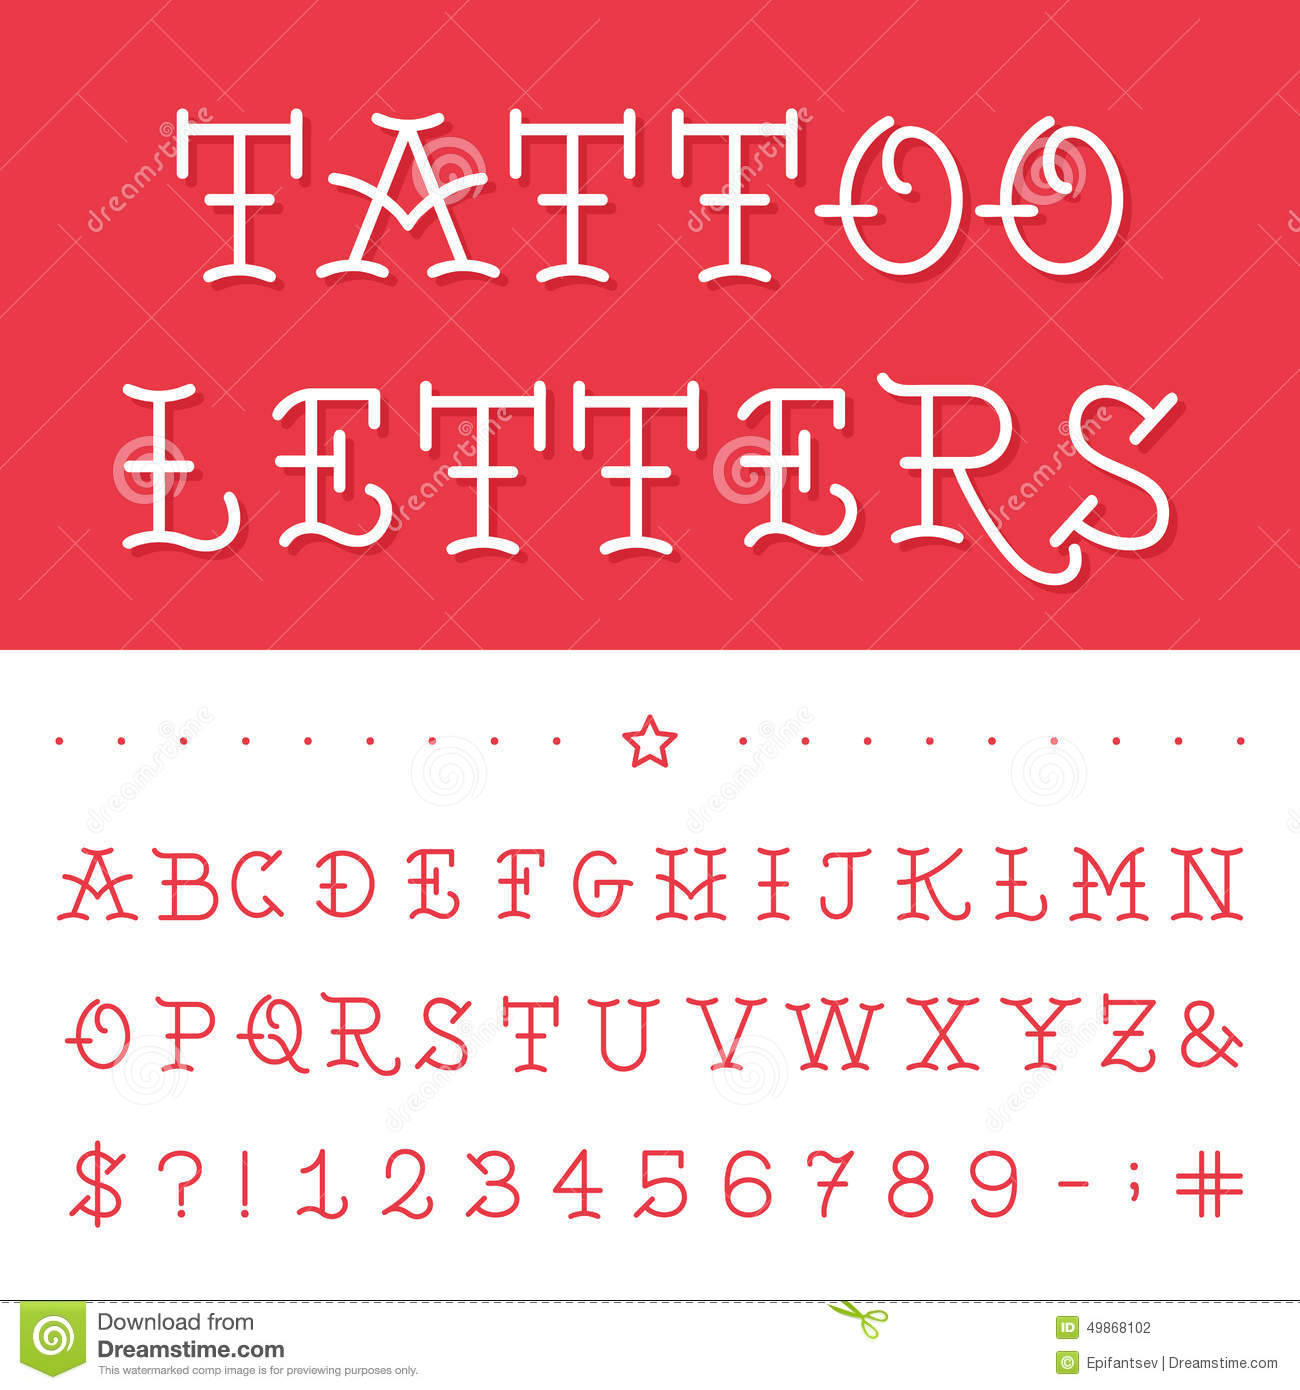 Tattoo Alphabet alphabet style tattoo stock photos, images, & pictures ...